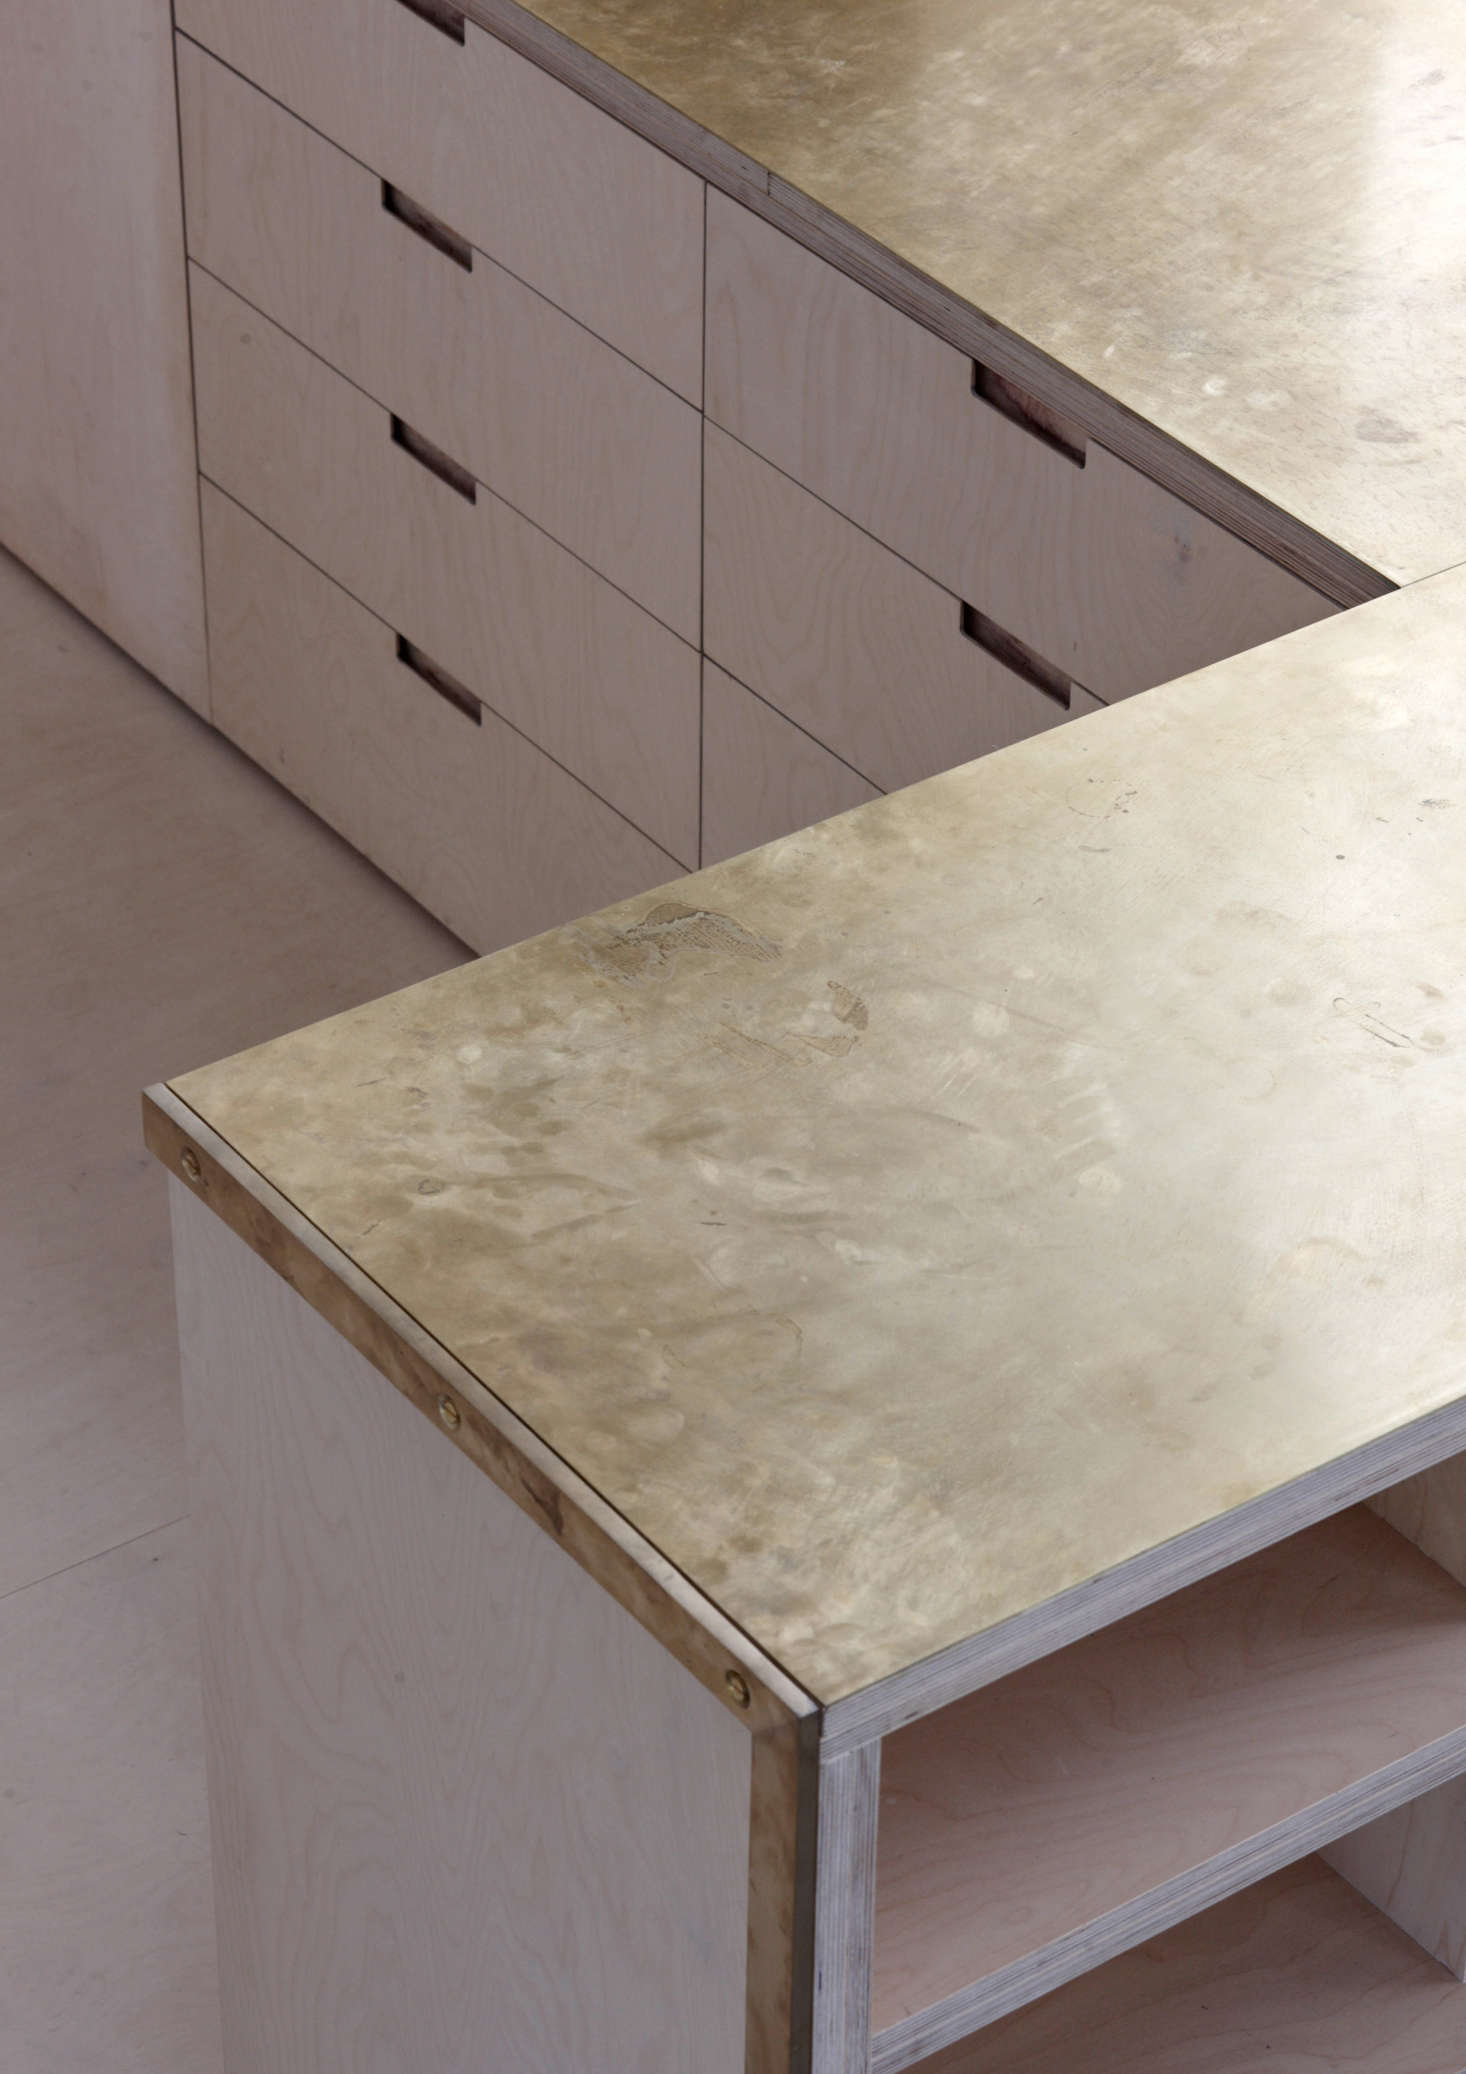 The counters(two layers of mm birch ply bonded with twomillimeters of brass:total thickness 38 millimeters)are unlacquered and intended togather fingerprints and patina over time. Allmillwork was designed byMcLarenExcell and fabricatedlocally.